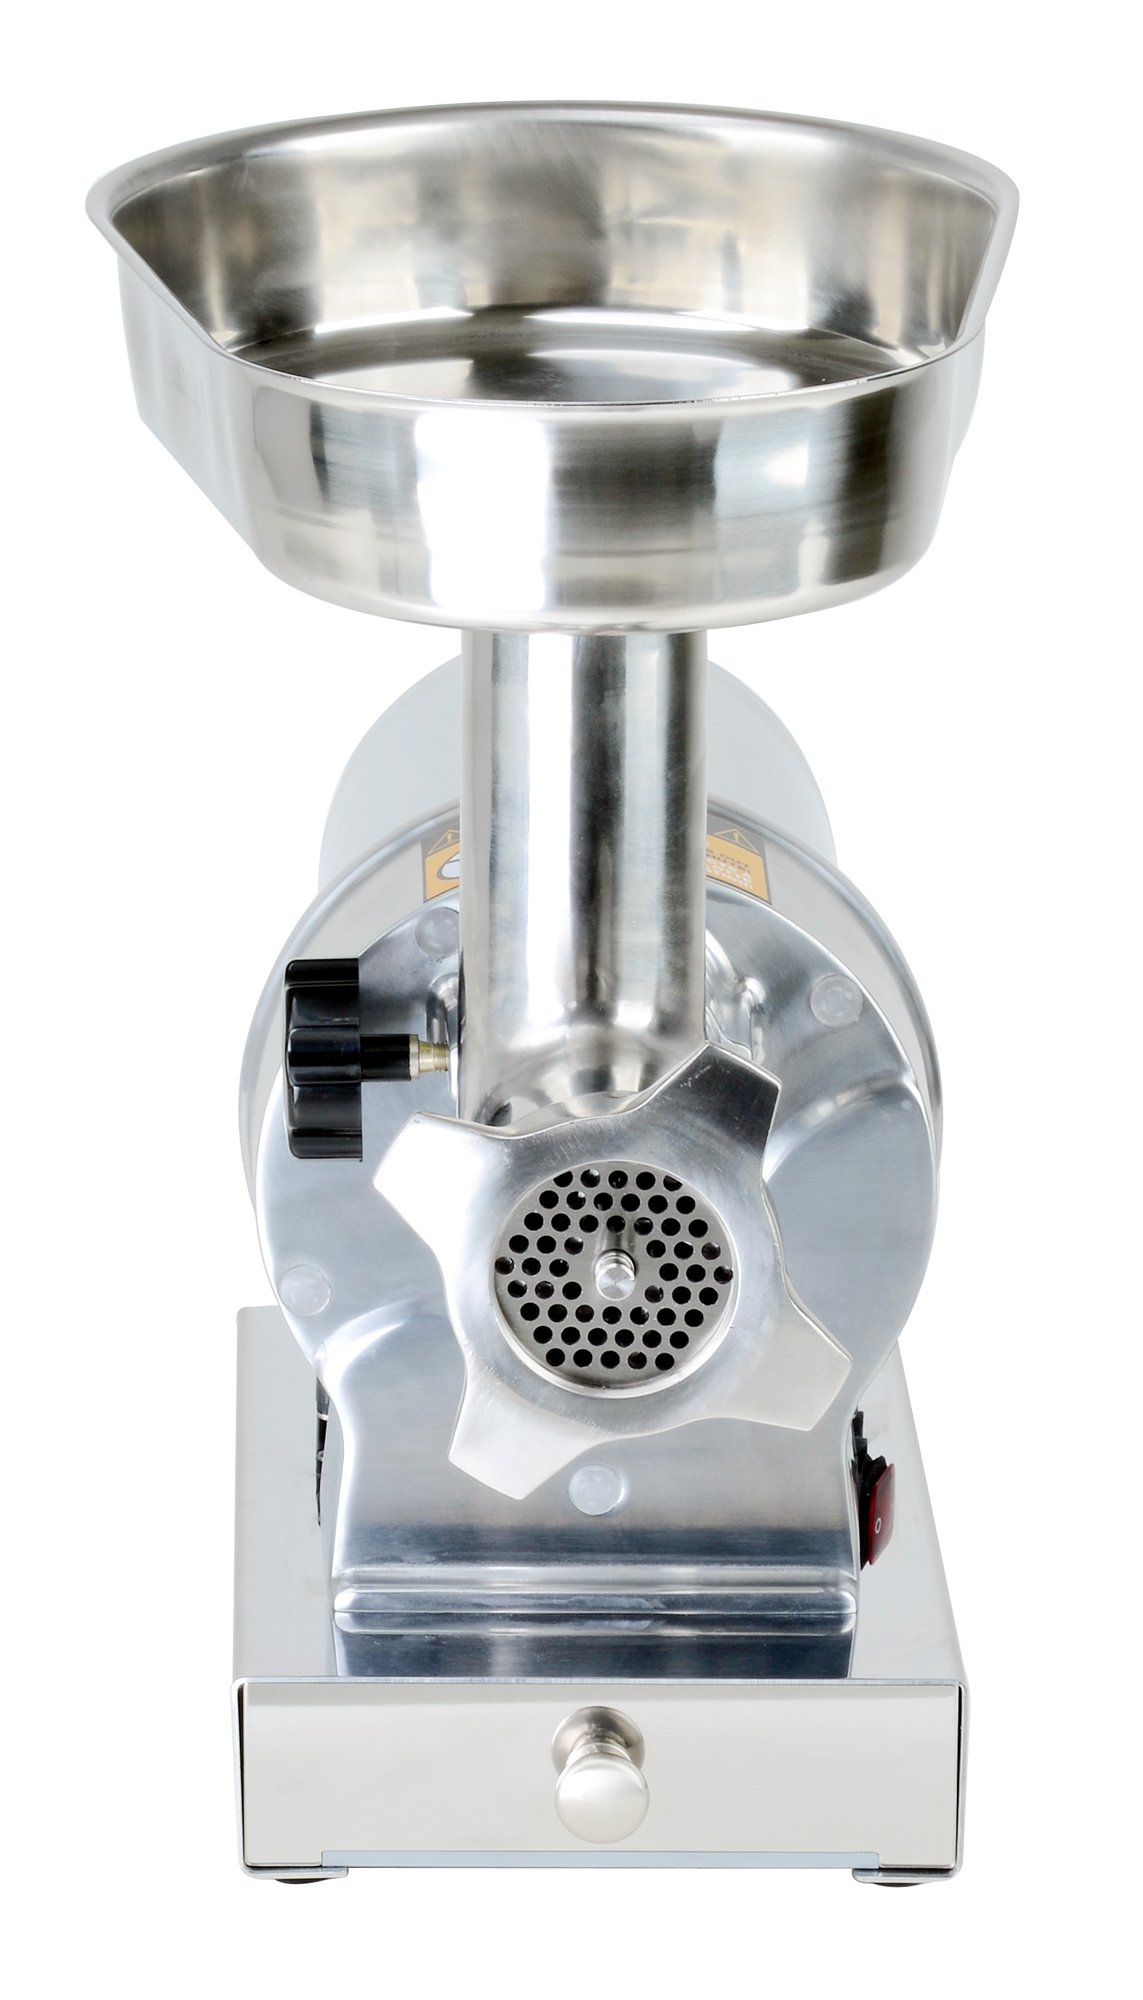 Kitchener #8 Commercial Grade Electric Stainless Steel Meat Grinder 1/2 HP (370W), (480-lbs Per Hour) by Kitchener (Image #5)